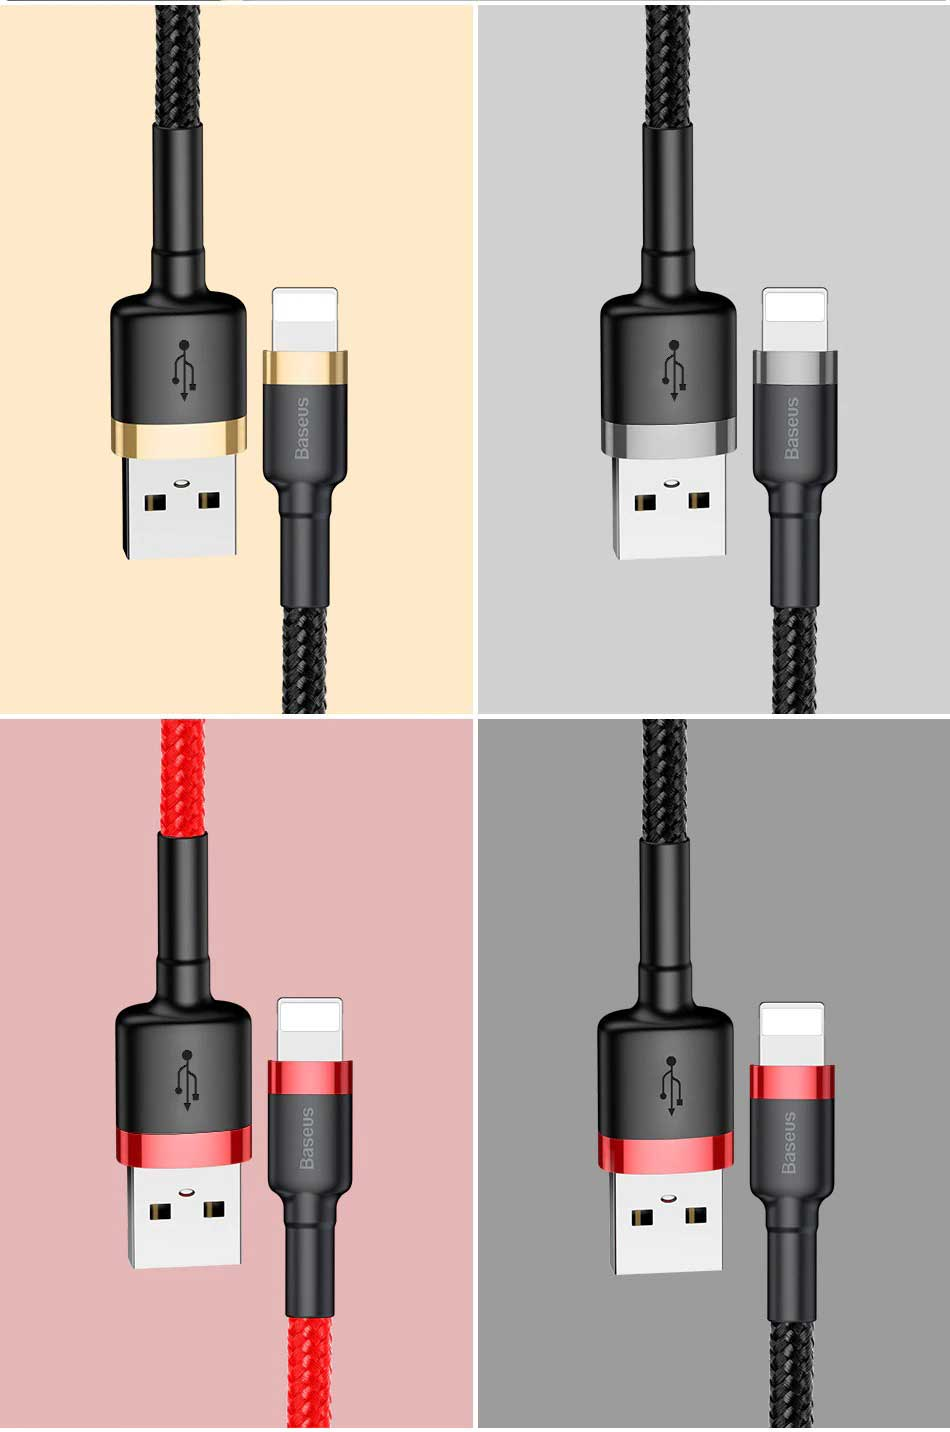 4 colors - Wear-Resistant Lightening Cable for Iphone - 2.4A Quick Charge